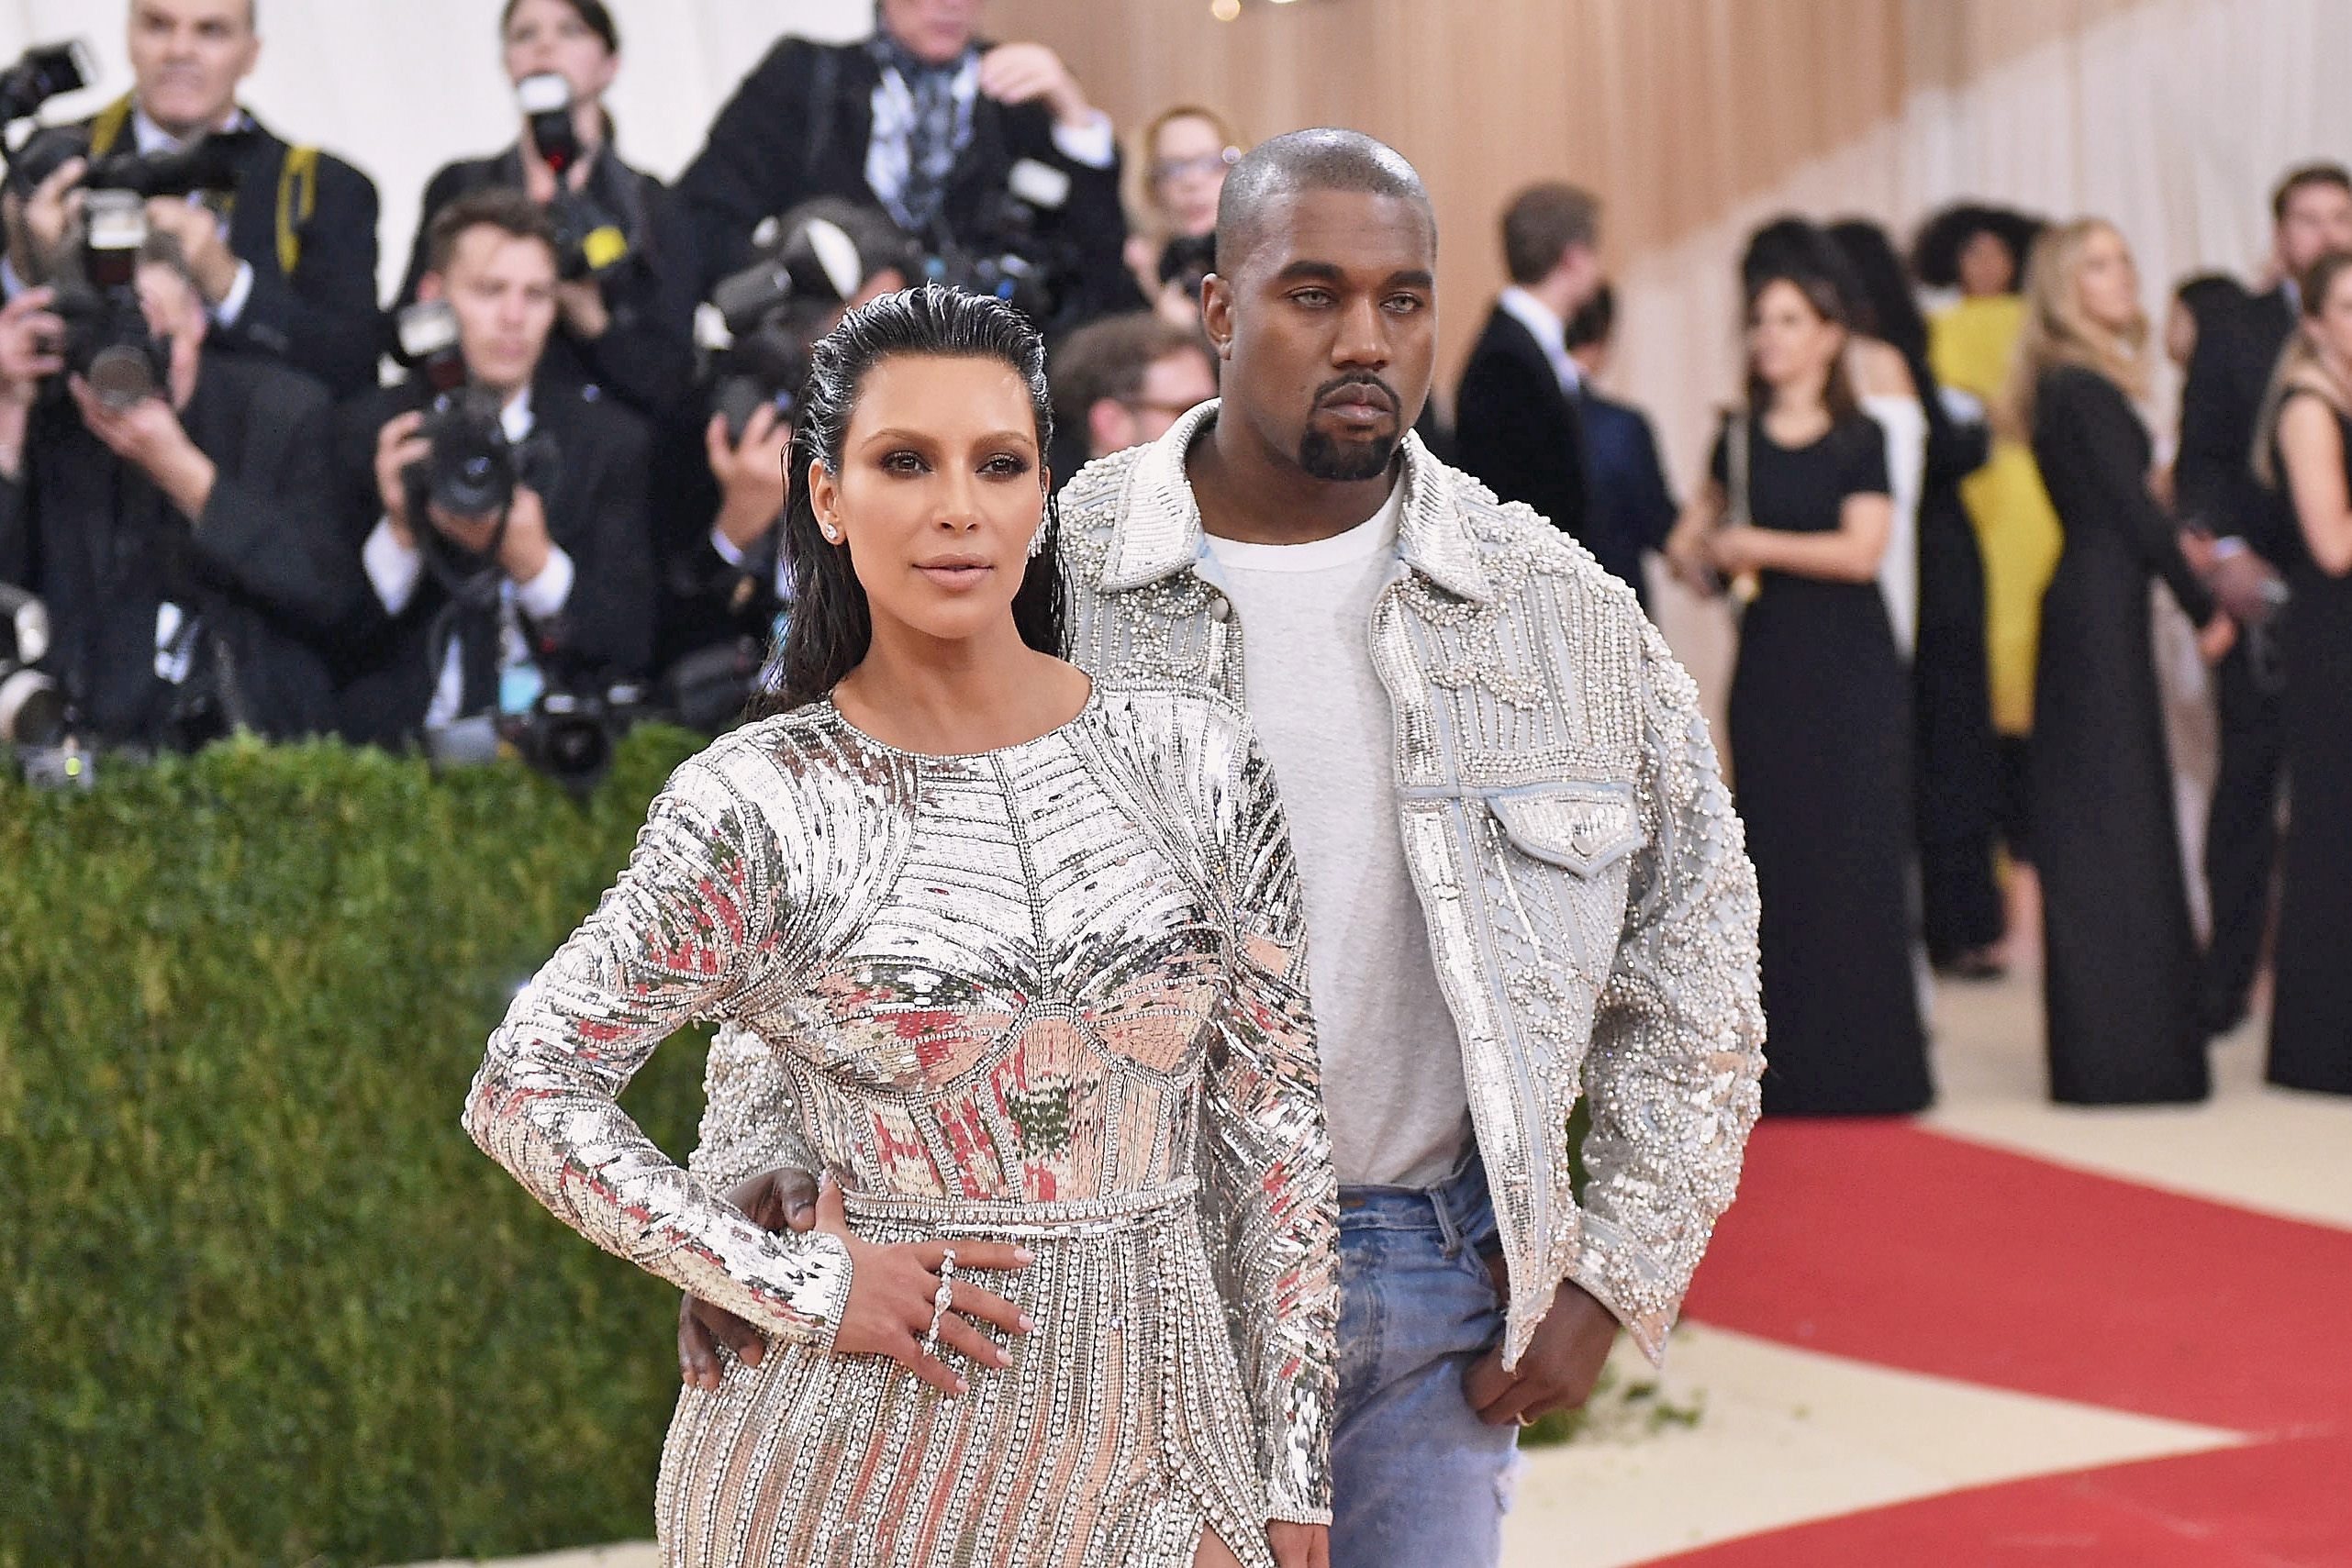 Kim Kardashian West and Kanye West attend the Costume Institute Gala at Metropolitan Museum of Art in 2016 in New York City.